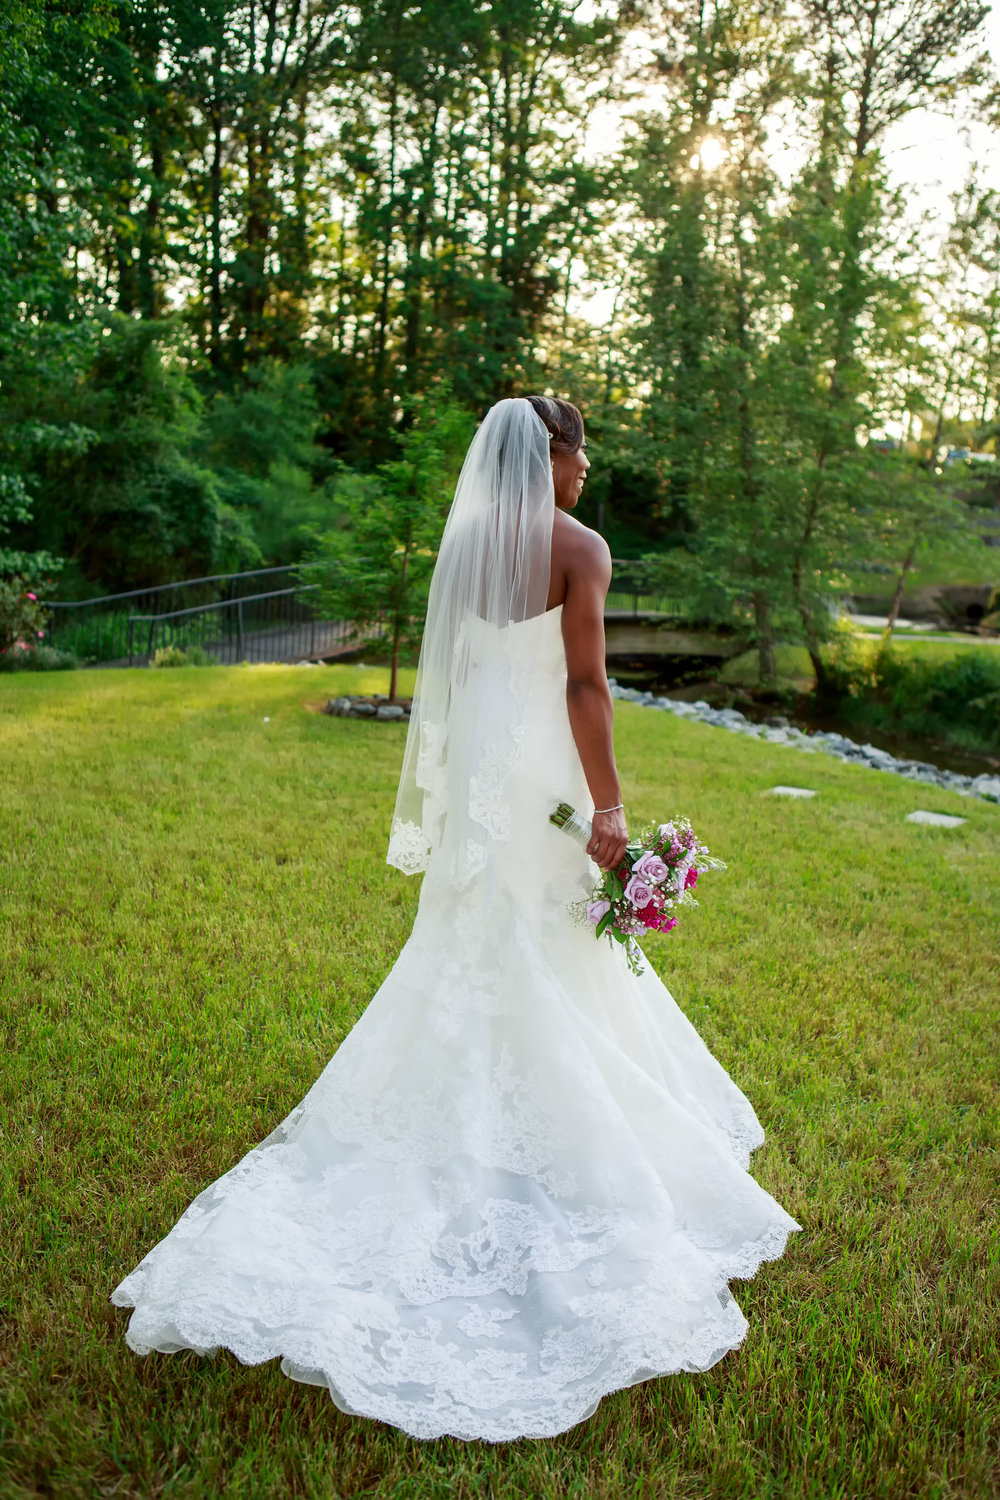 NC-Wedding-Vizcaya-Villa-Fayetteville-Bride-and-Groom-21.jpg